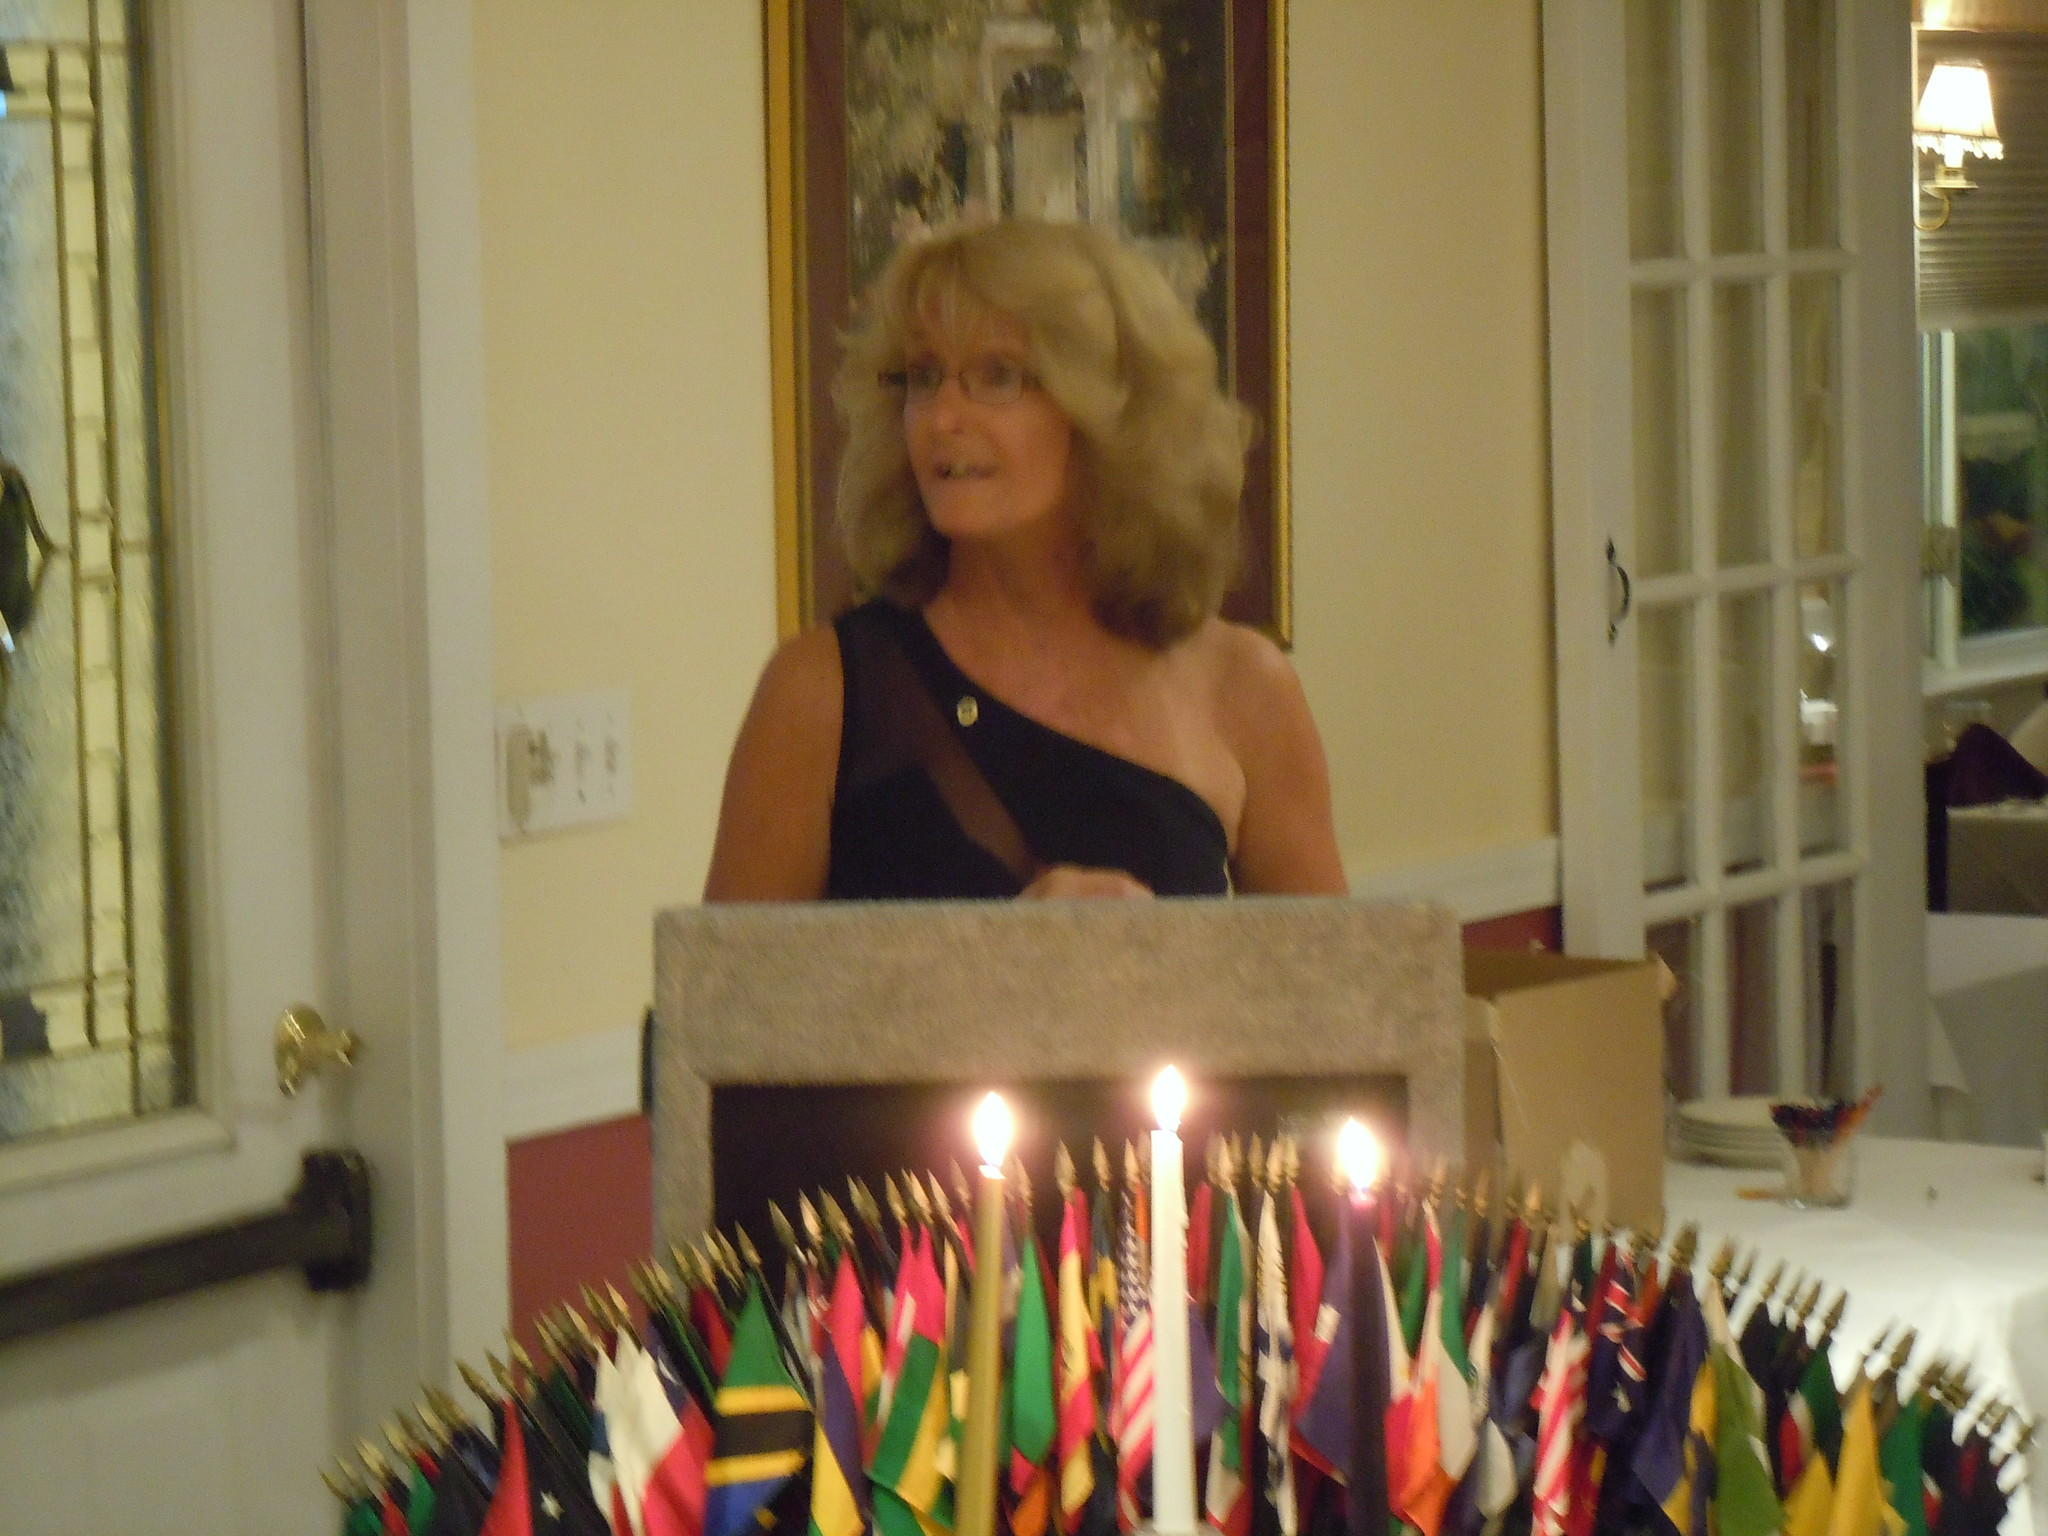 New Windsor Lions President Deborah Orth addresses the club at her installation ceremony.